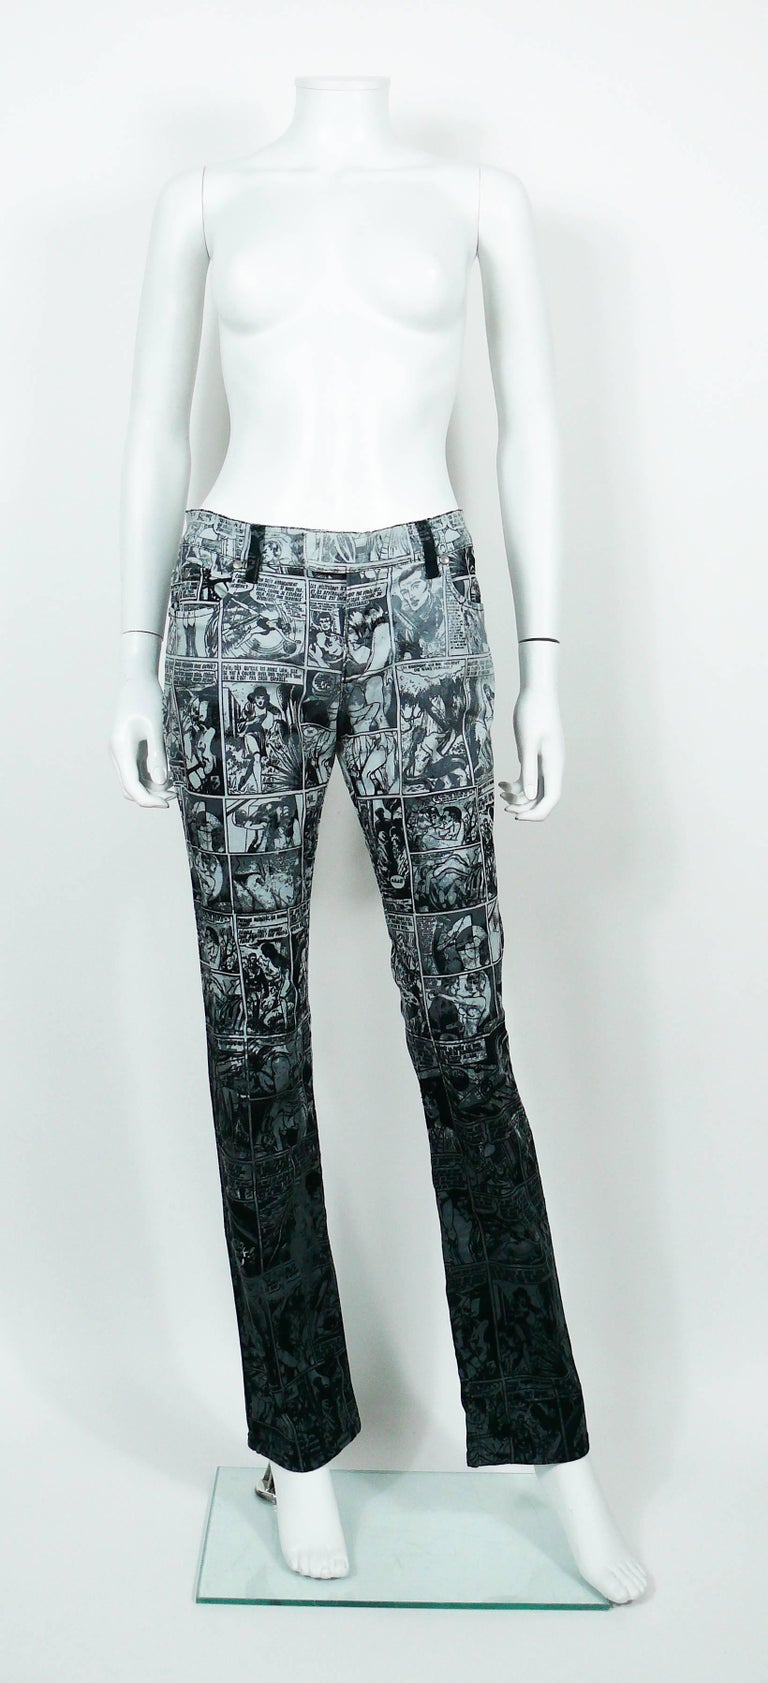 Jean Paul Gaultier Comic Cartoon Print Pants Trousers  In Excellent Condition For Sale In French Riviera, Nice